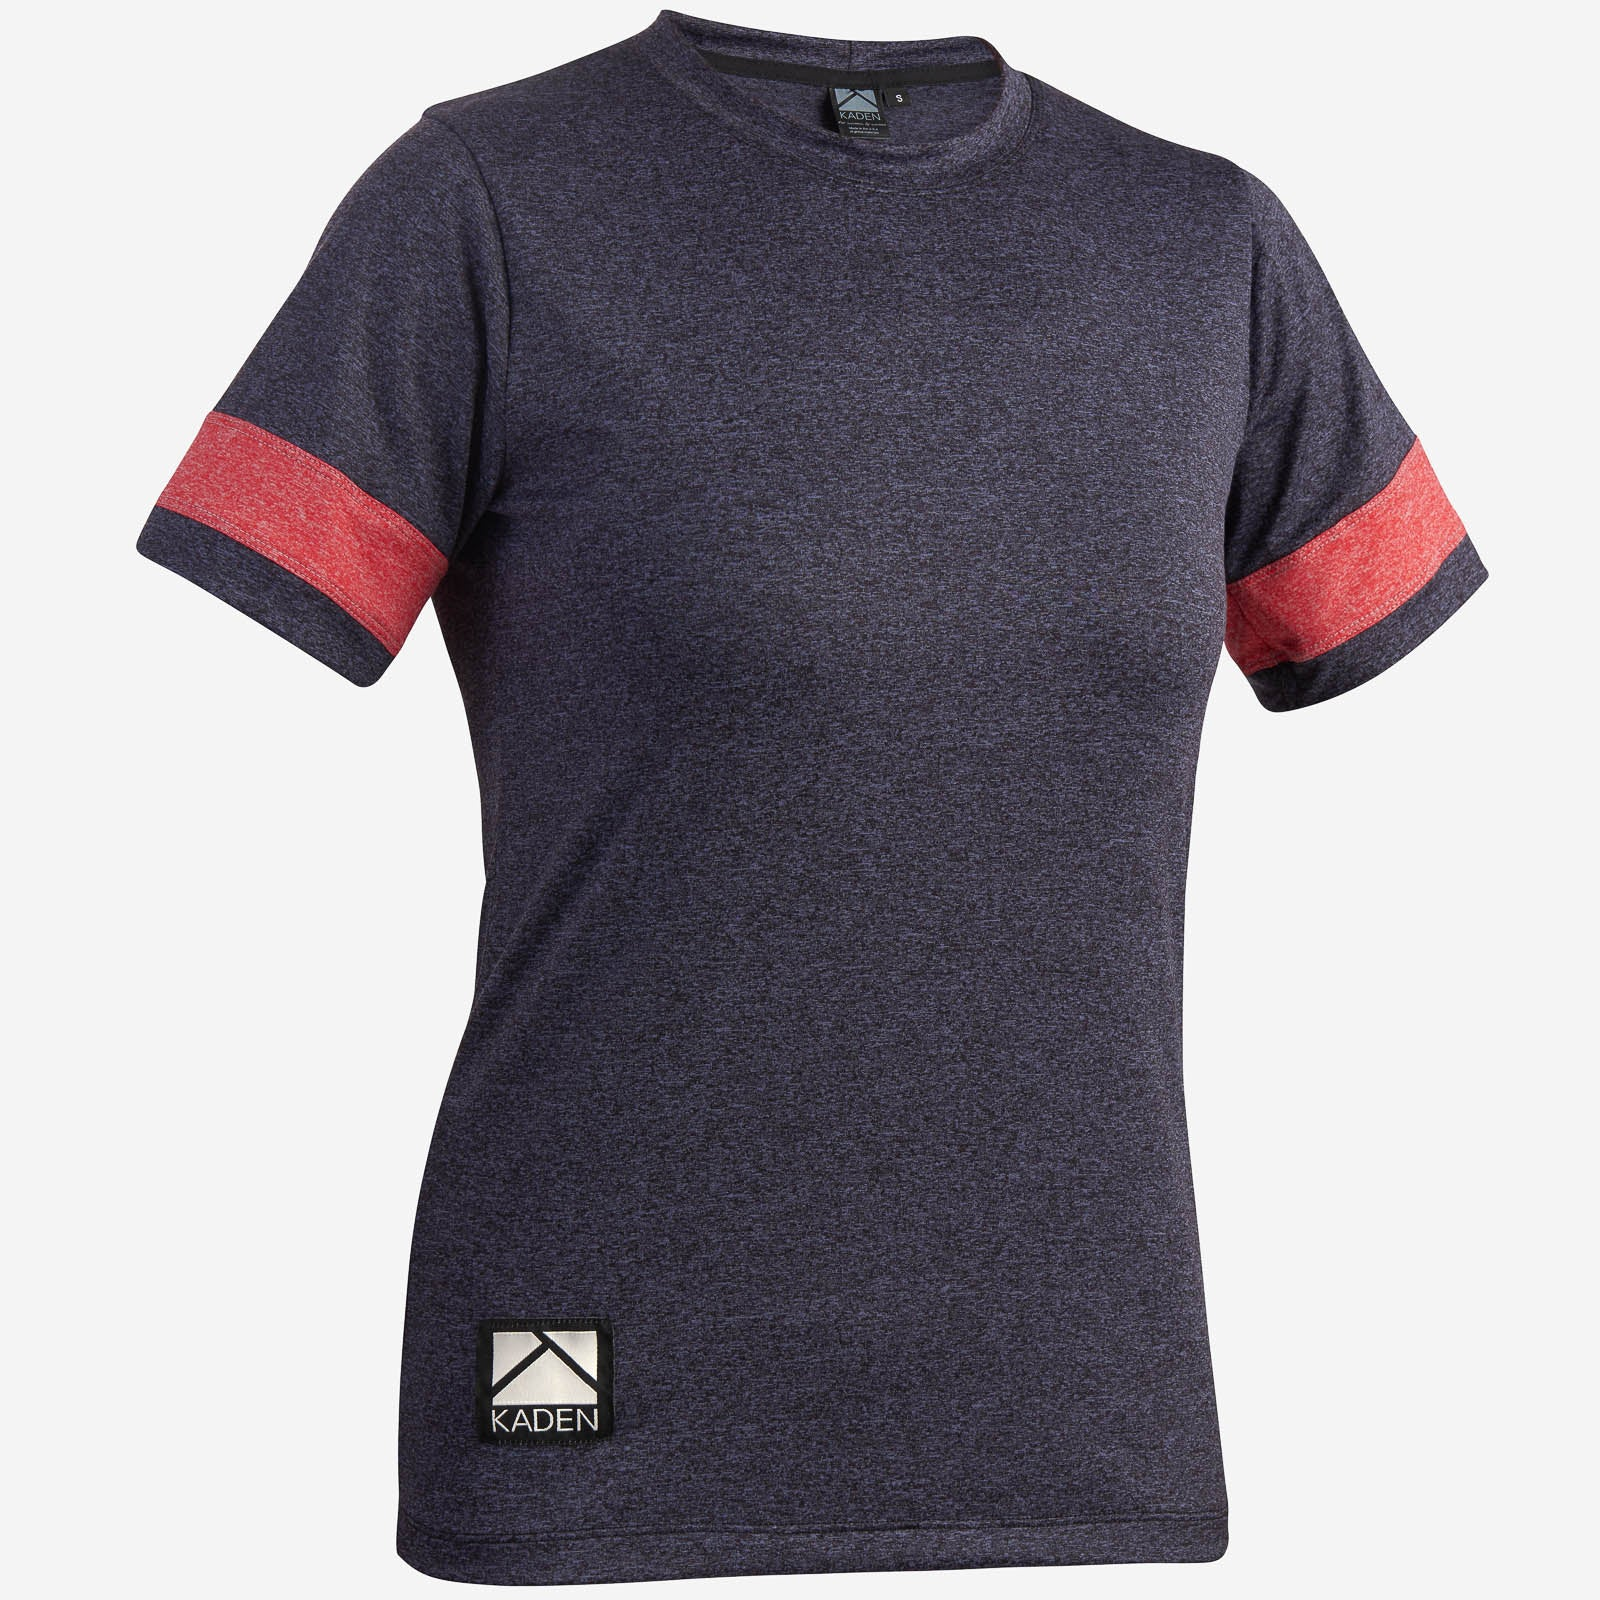 Florence Jersey Reviewed by Grit and Gear - Florence Jersey